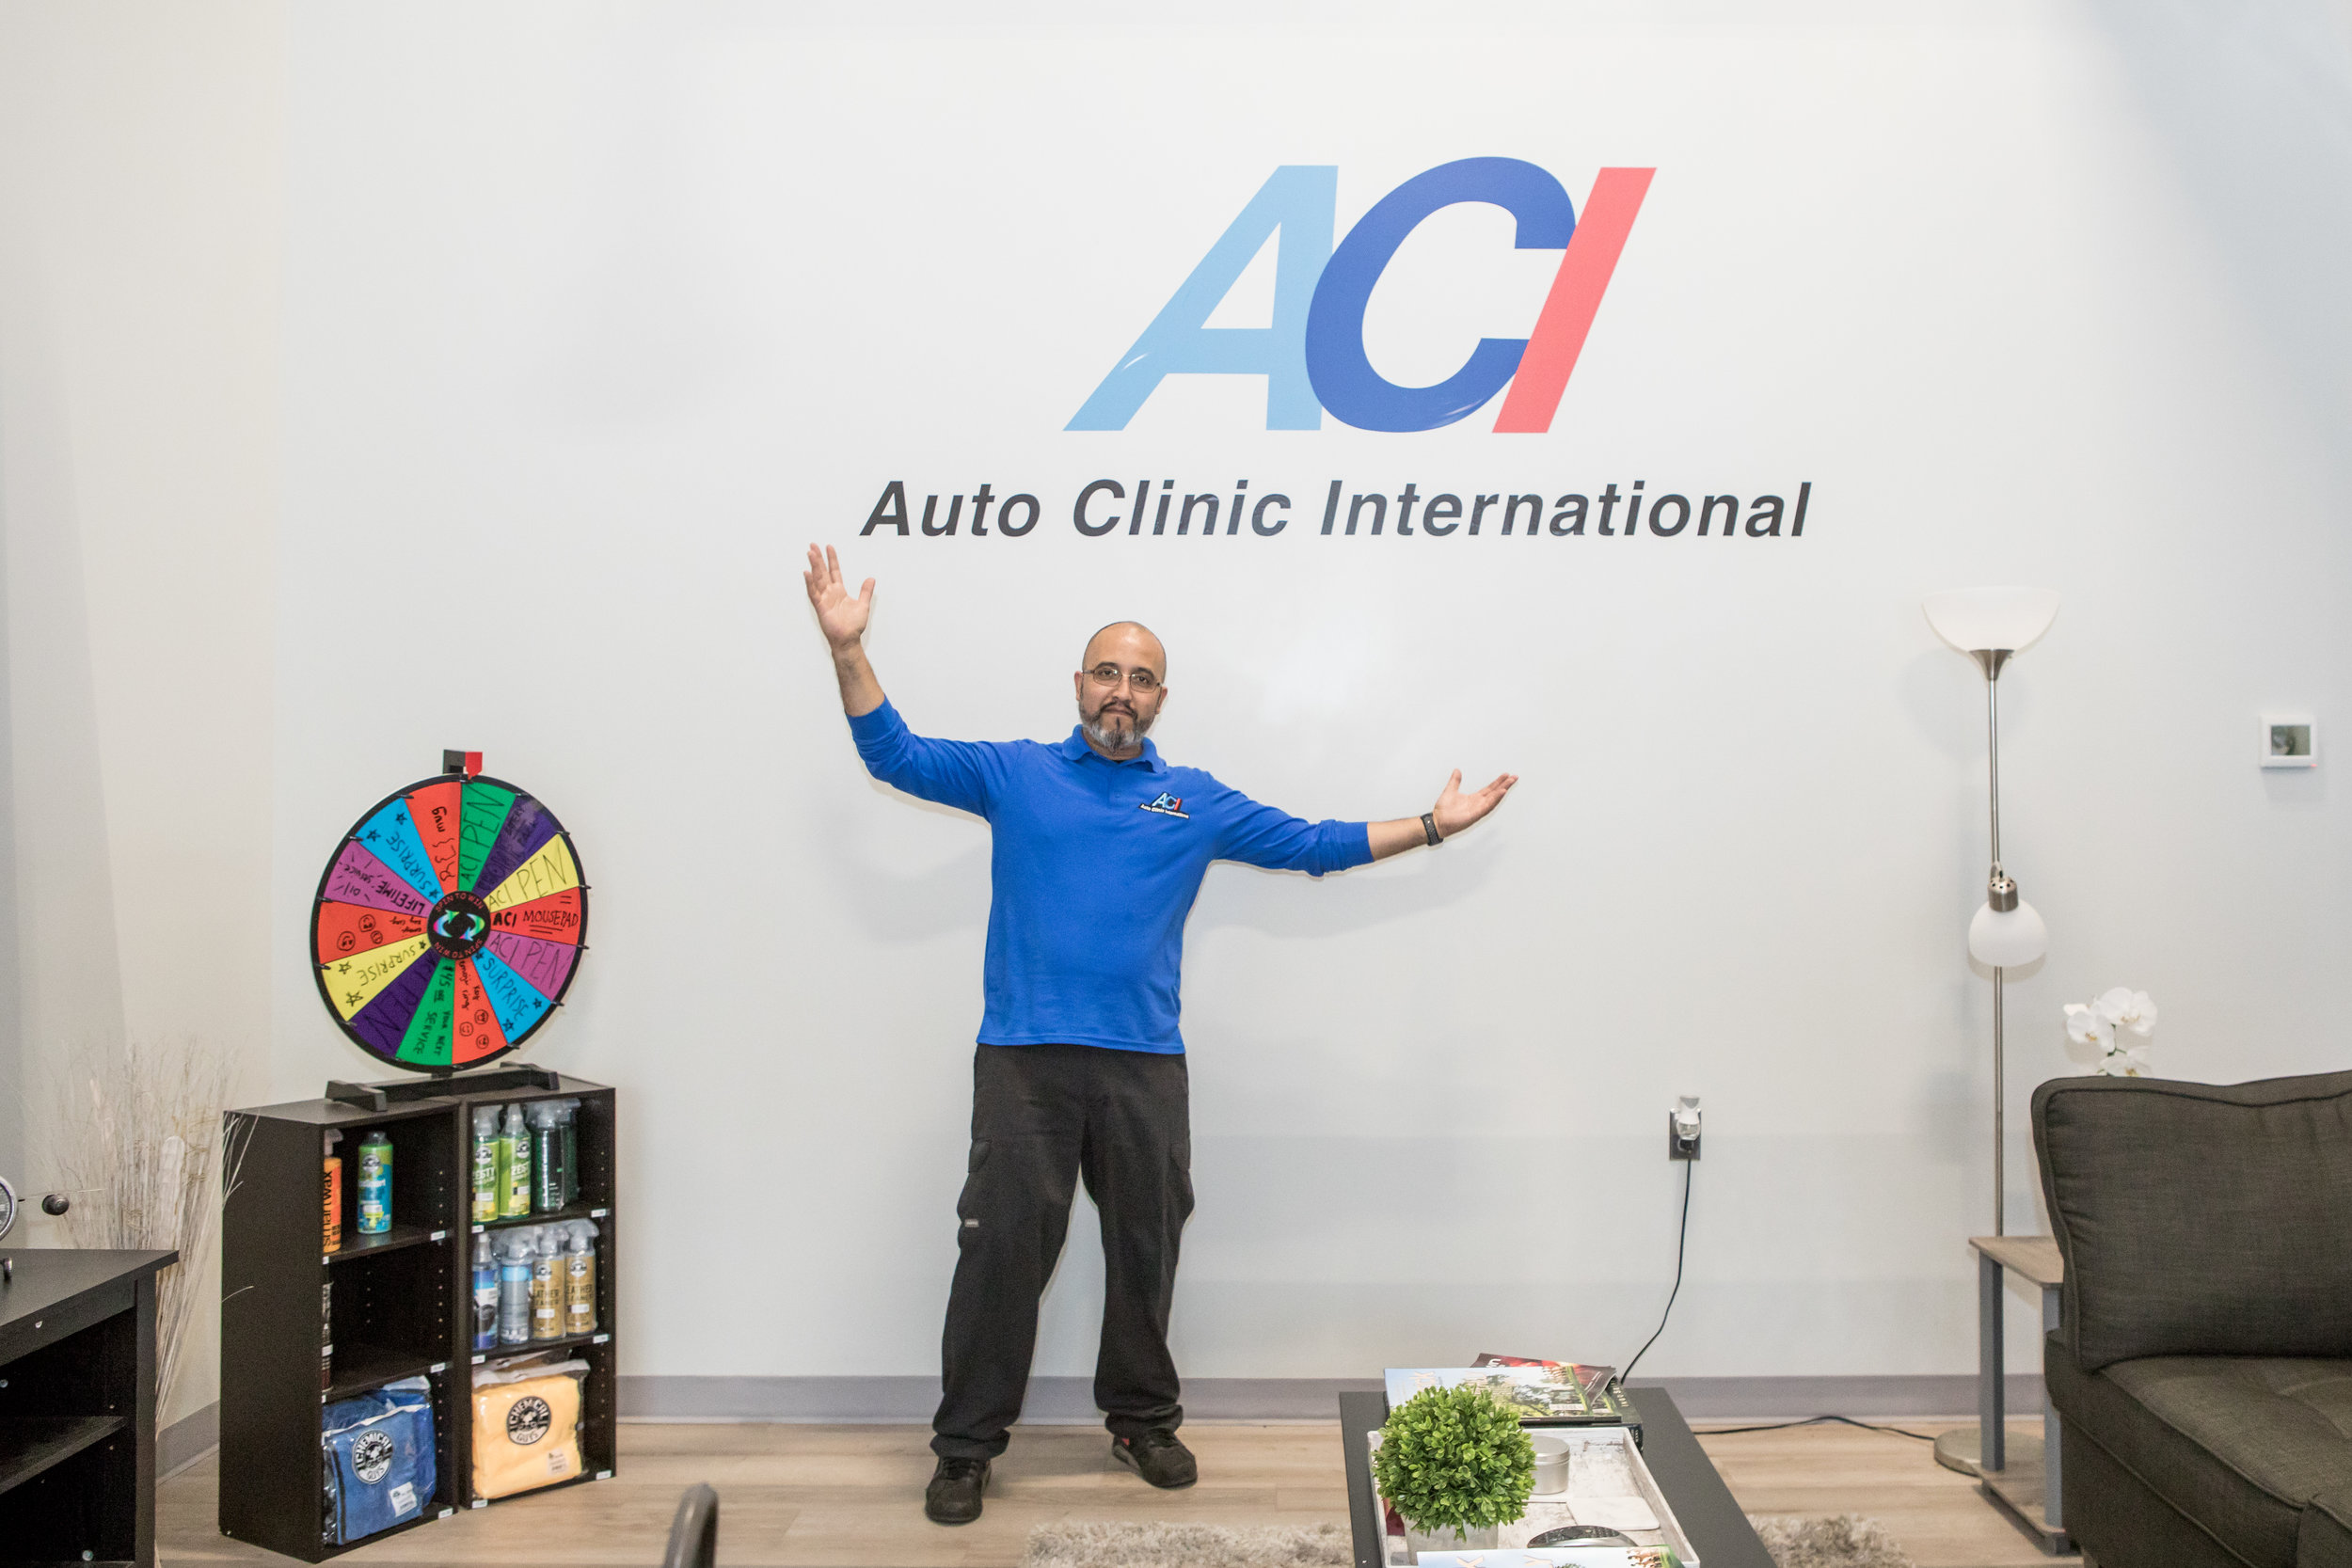 Edgar Opazo shows off the truly deluxe waiting room at ACI.